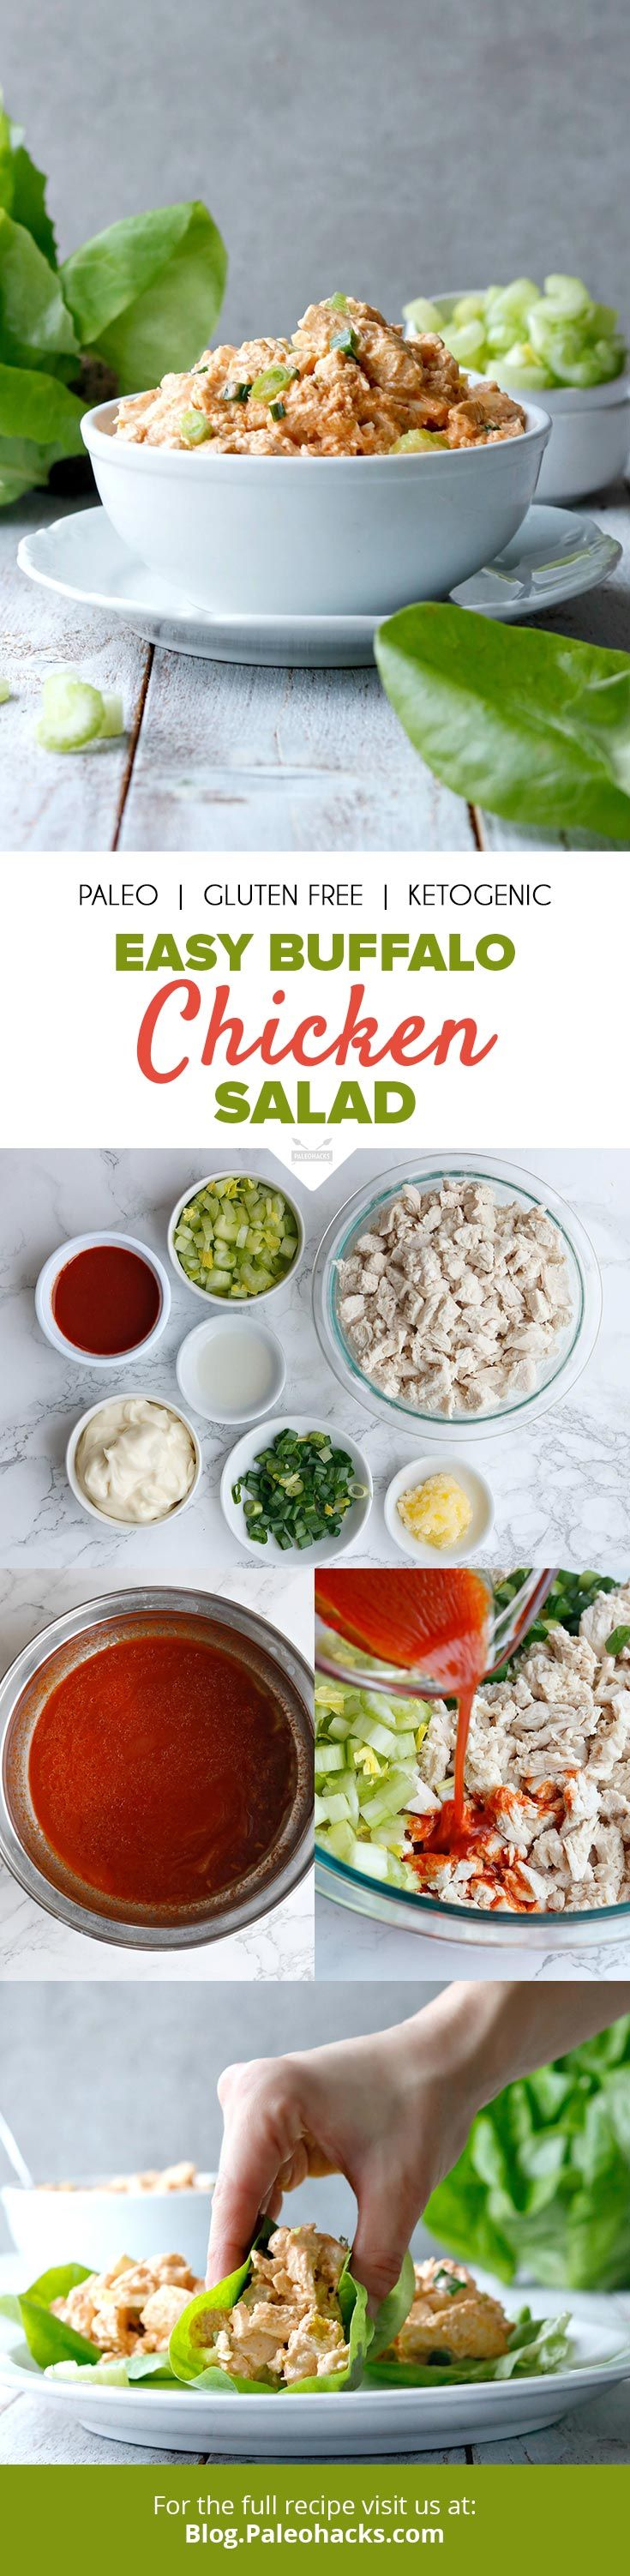 All the flavor of buffalo wings in one healthy chicken salad! Bonus: It's keto and Paleo-friendly, too! Get the full recipe here: http://paleo.co/buffalochucksalad